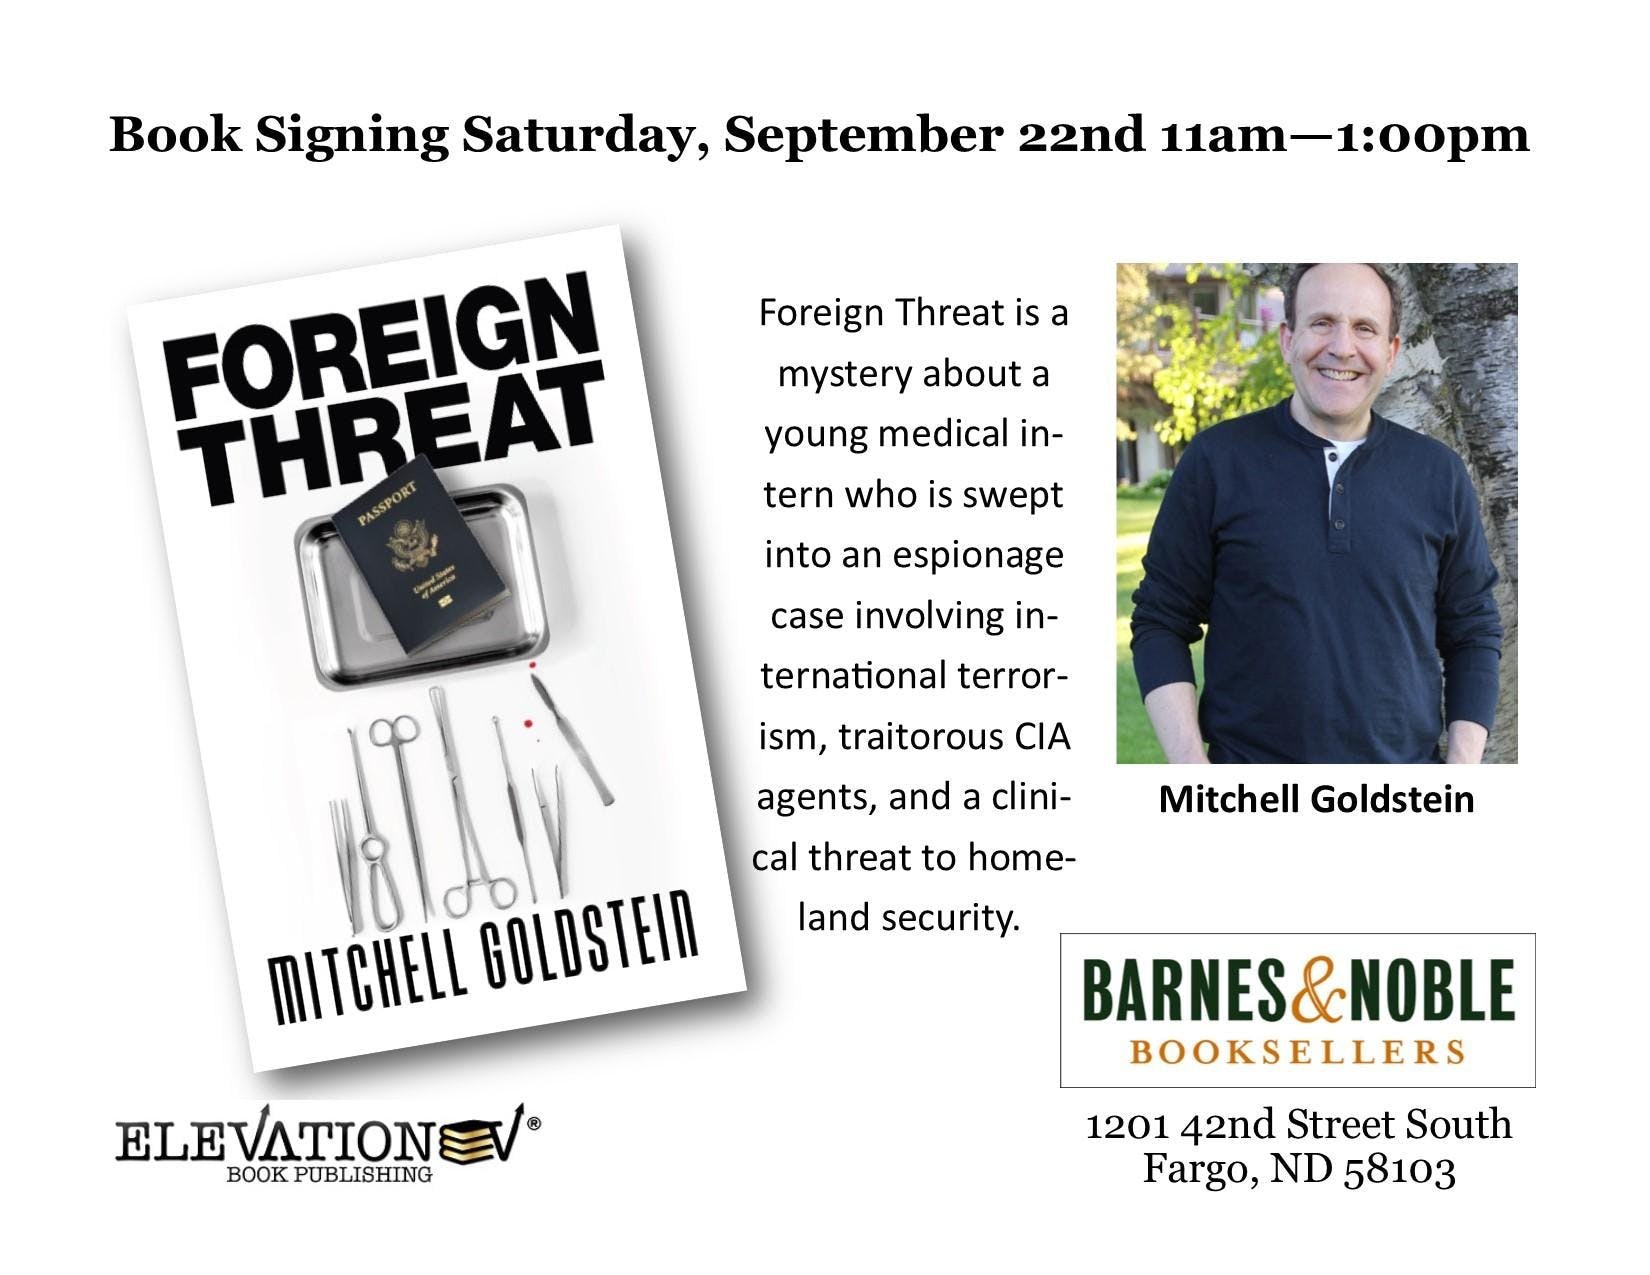 Foreign Threat Book Signing Barnes & Noble, Fargo, ND on September 22nd!